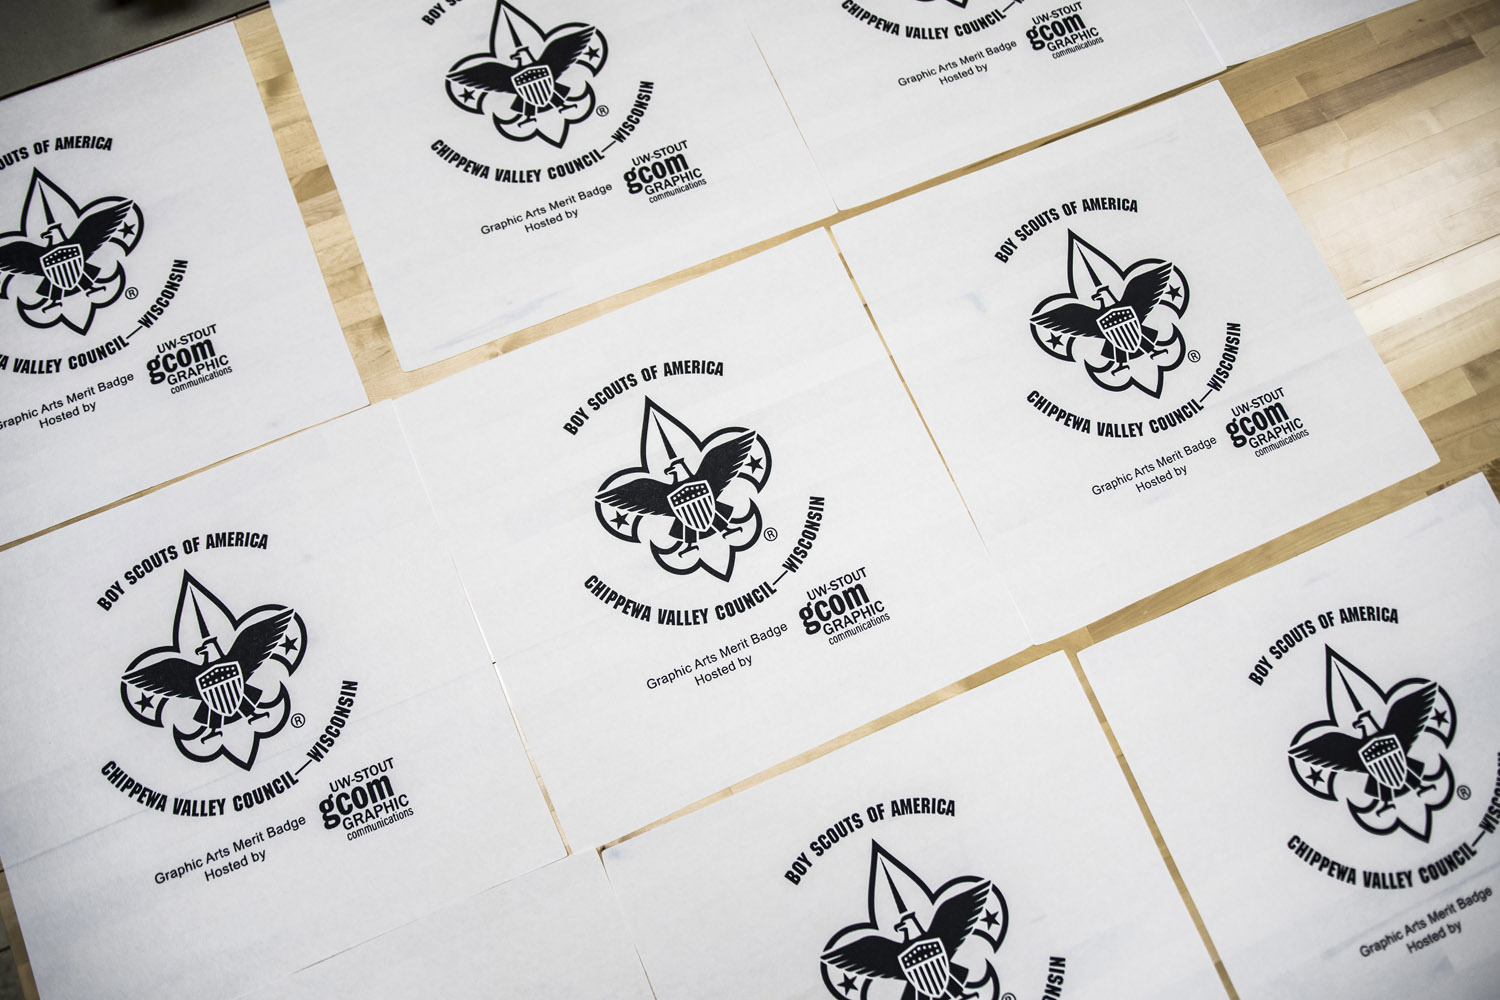 Print ready: UW-Stout students, staff help Boy Scouts earn graphic